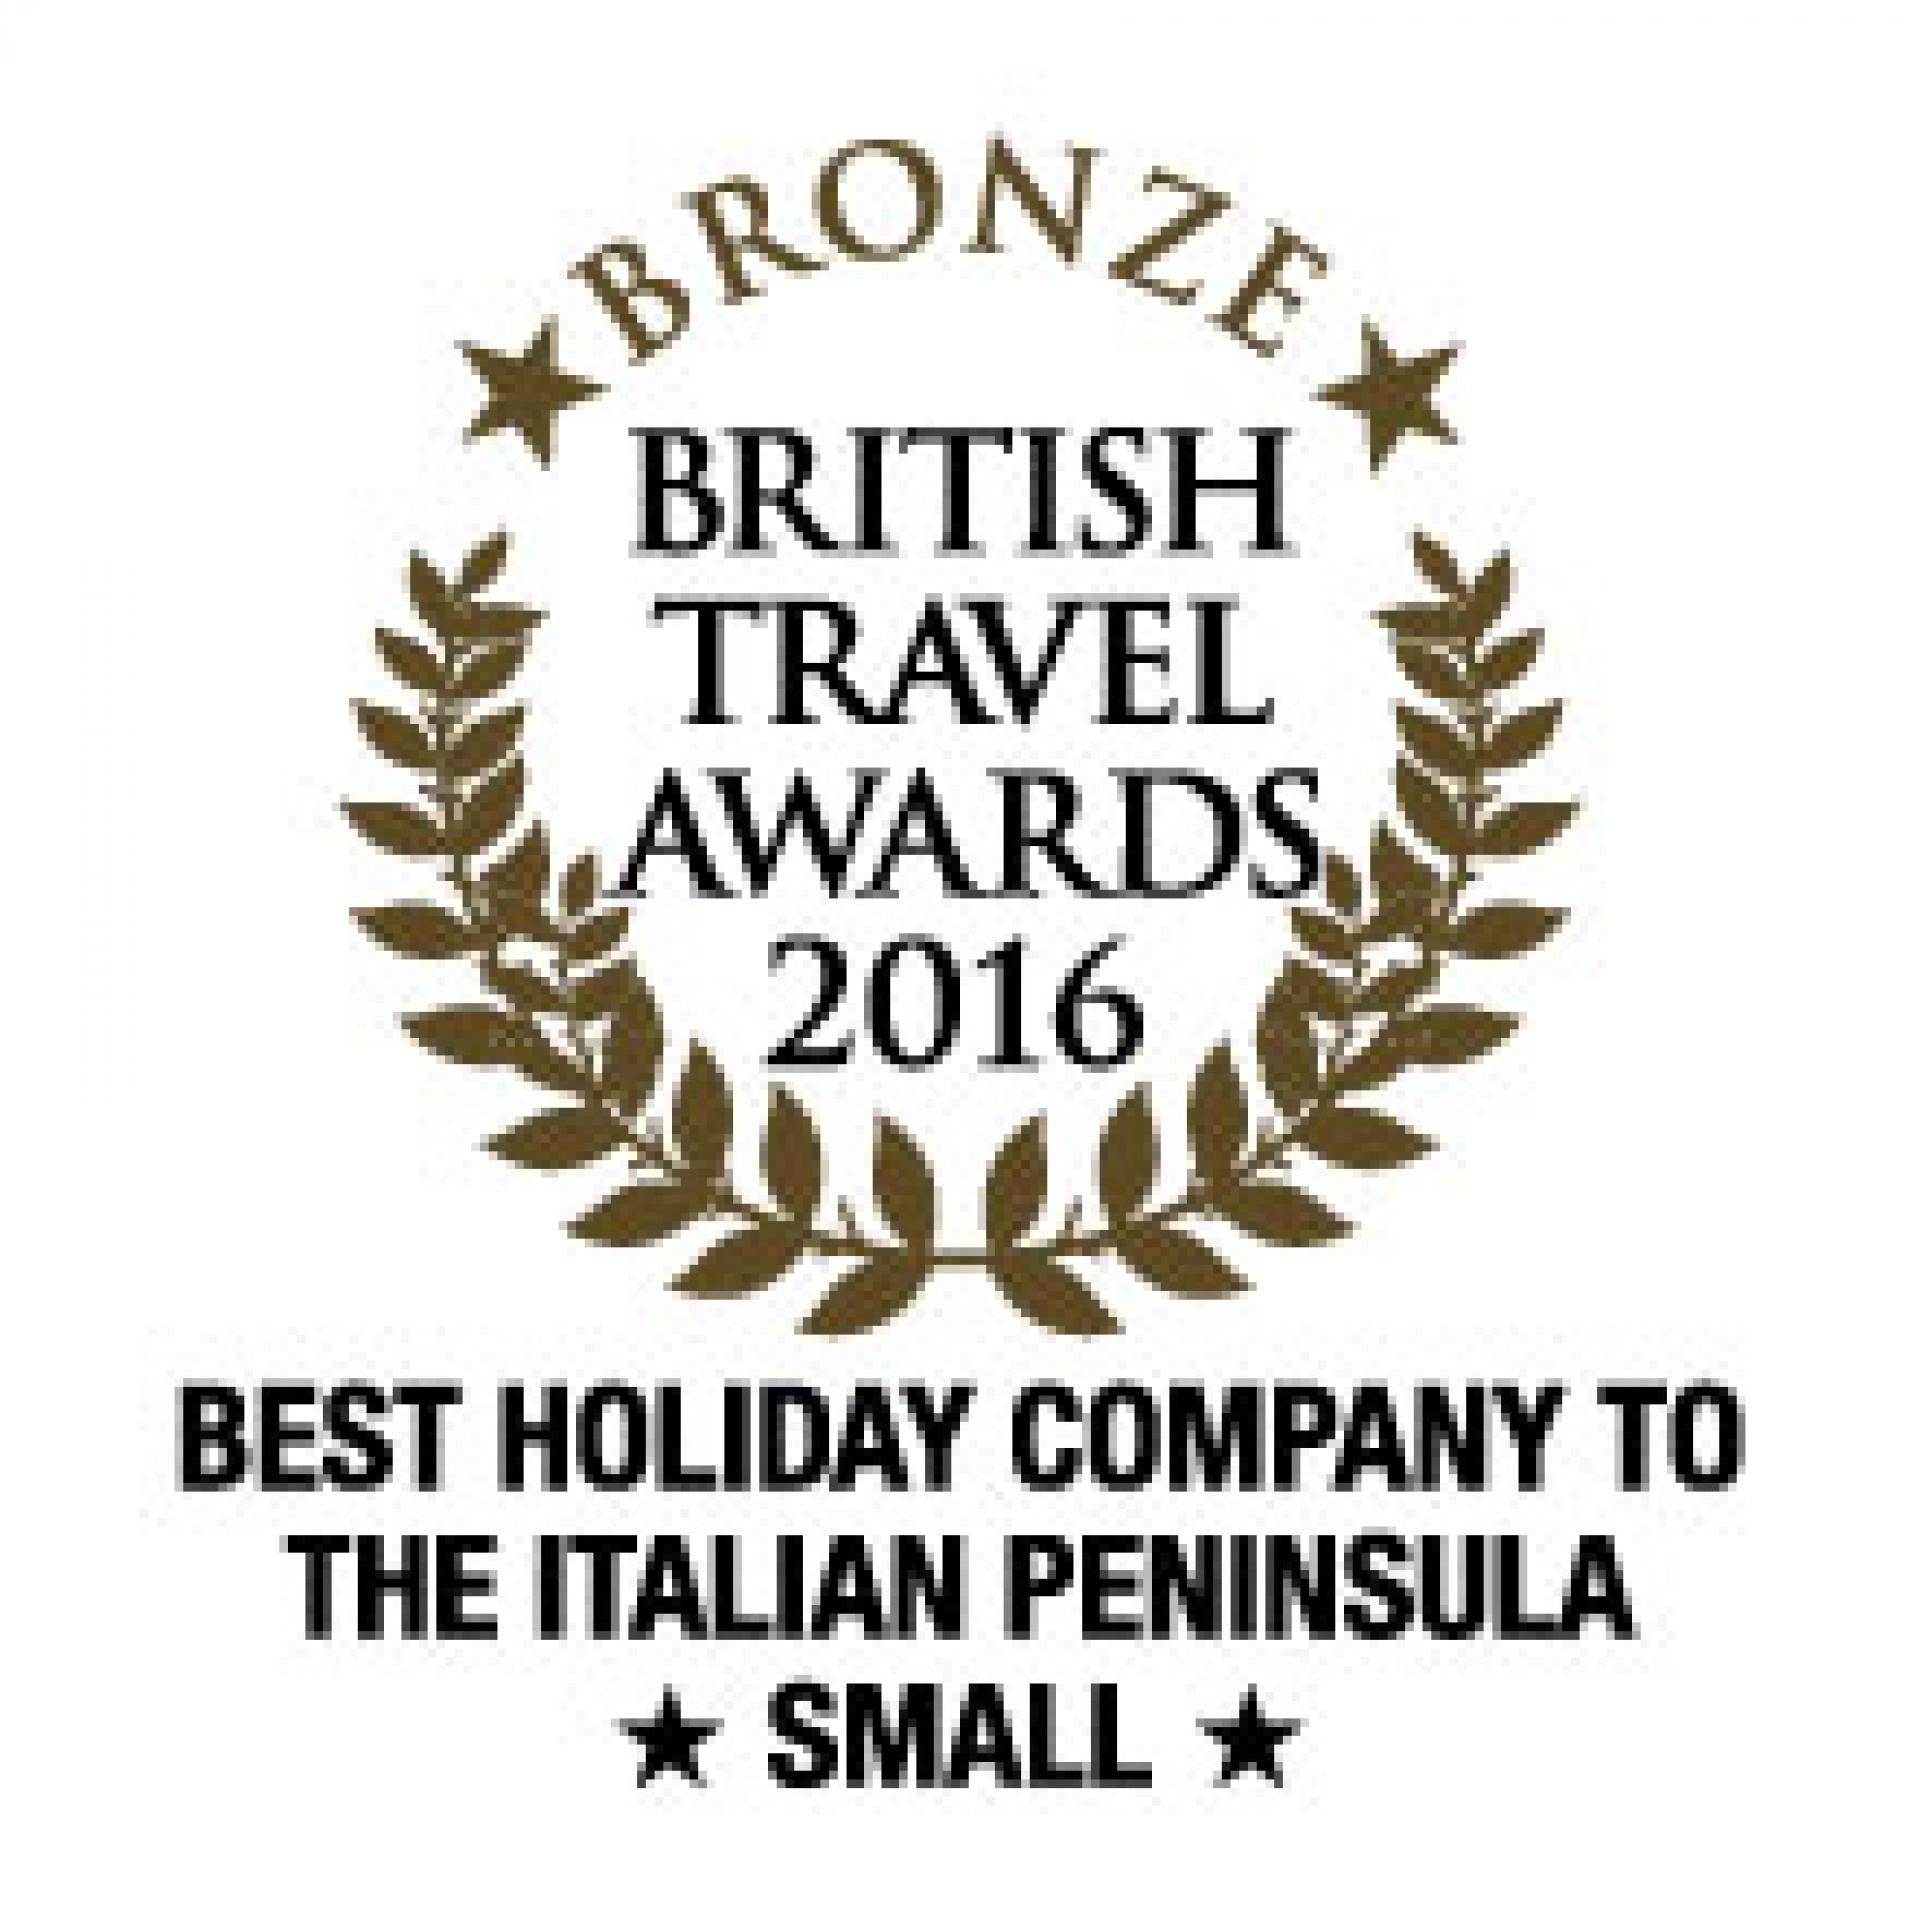 British Travel Awards 2016